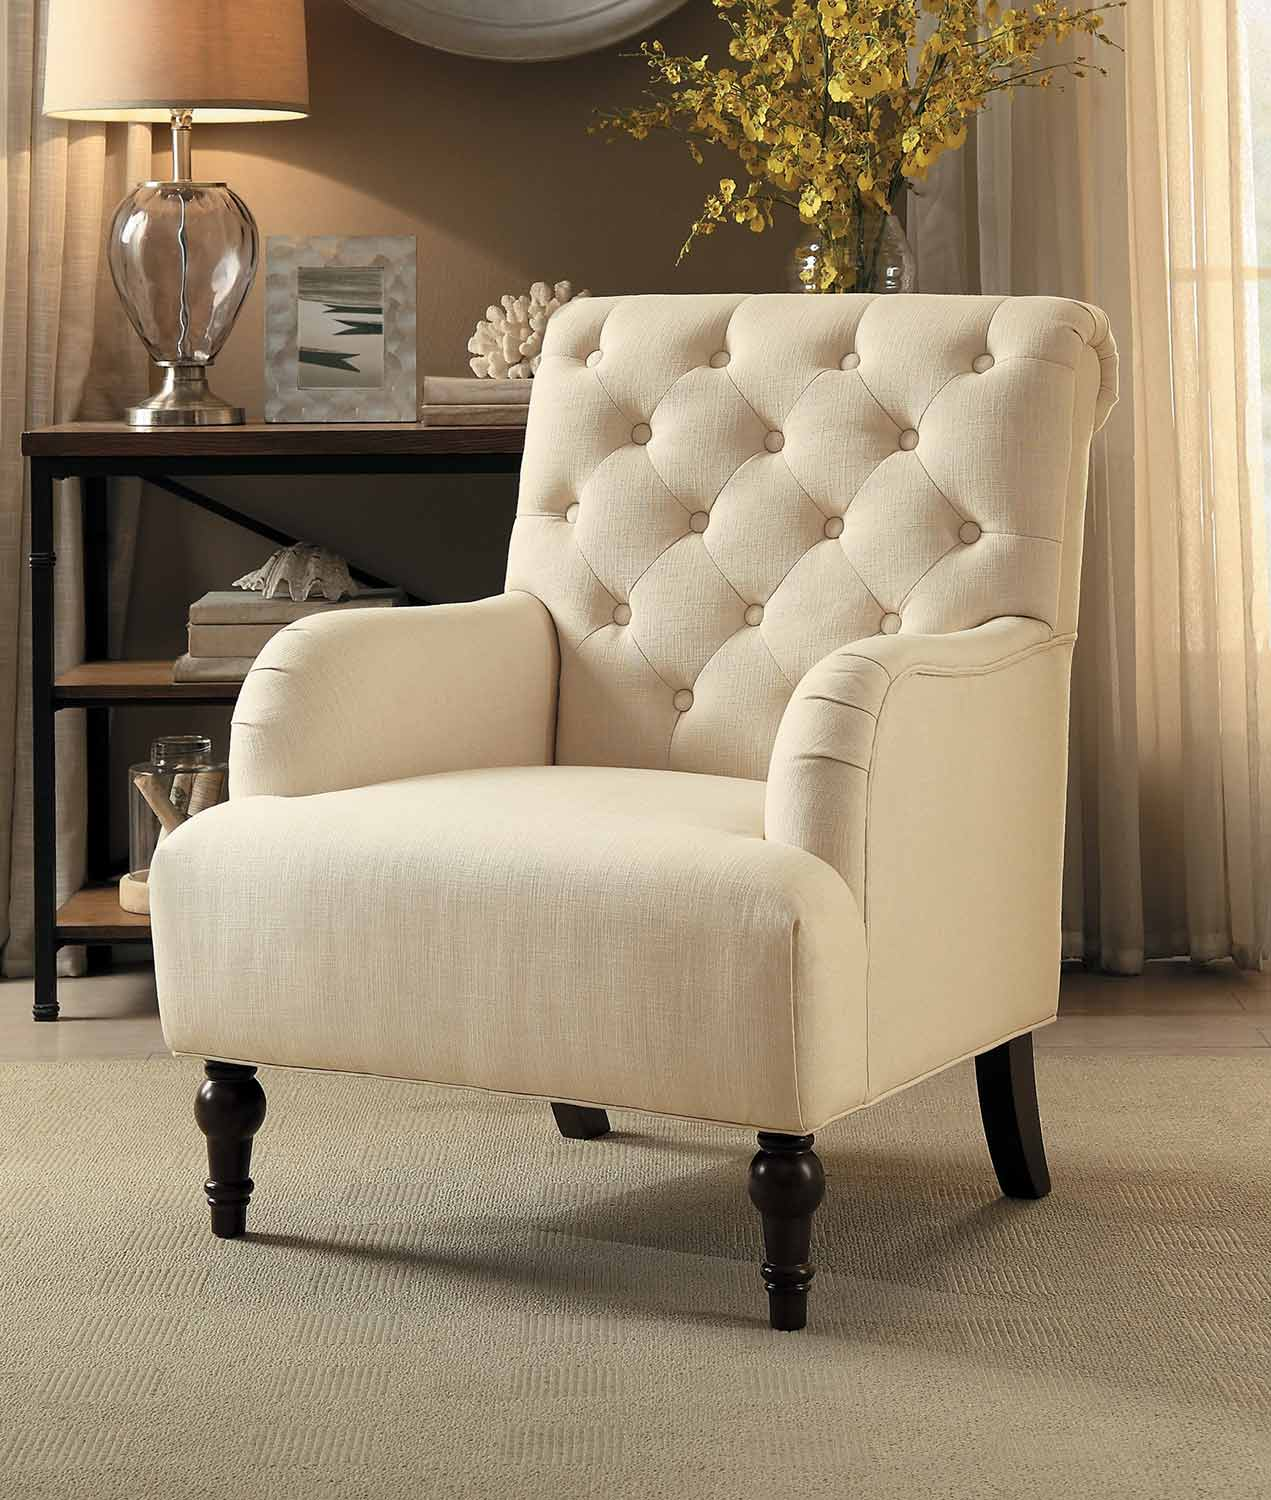 Homelegance Cotswold Accent Chair - Beige